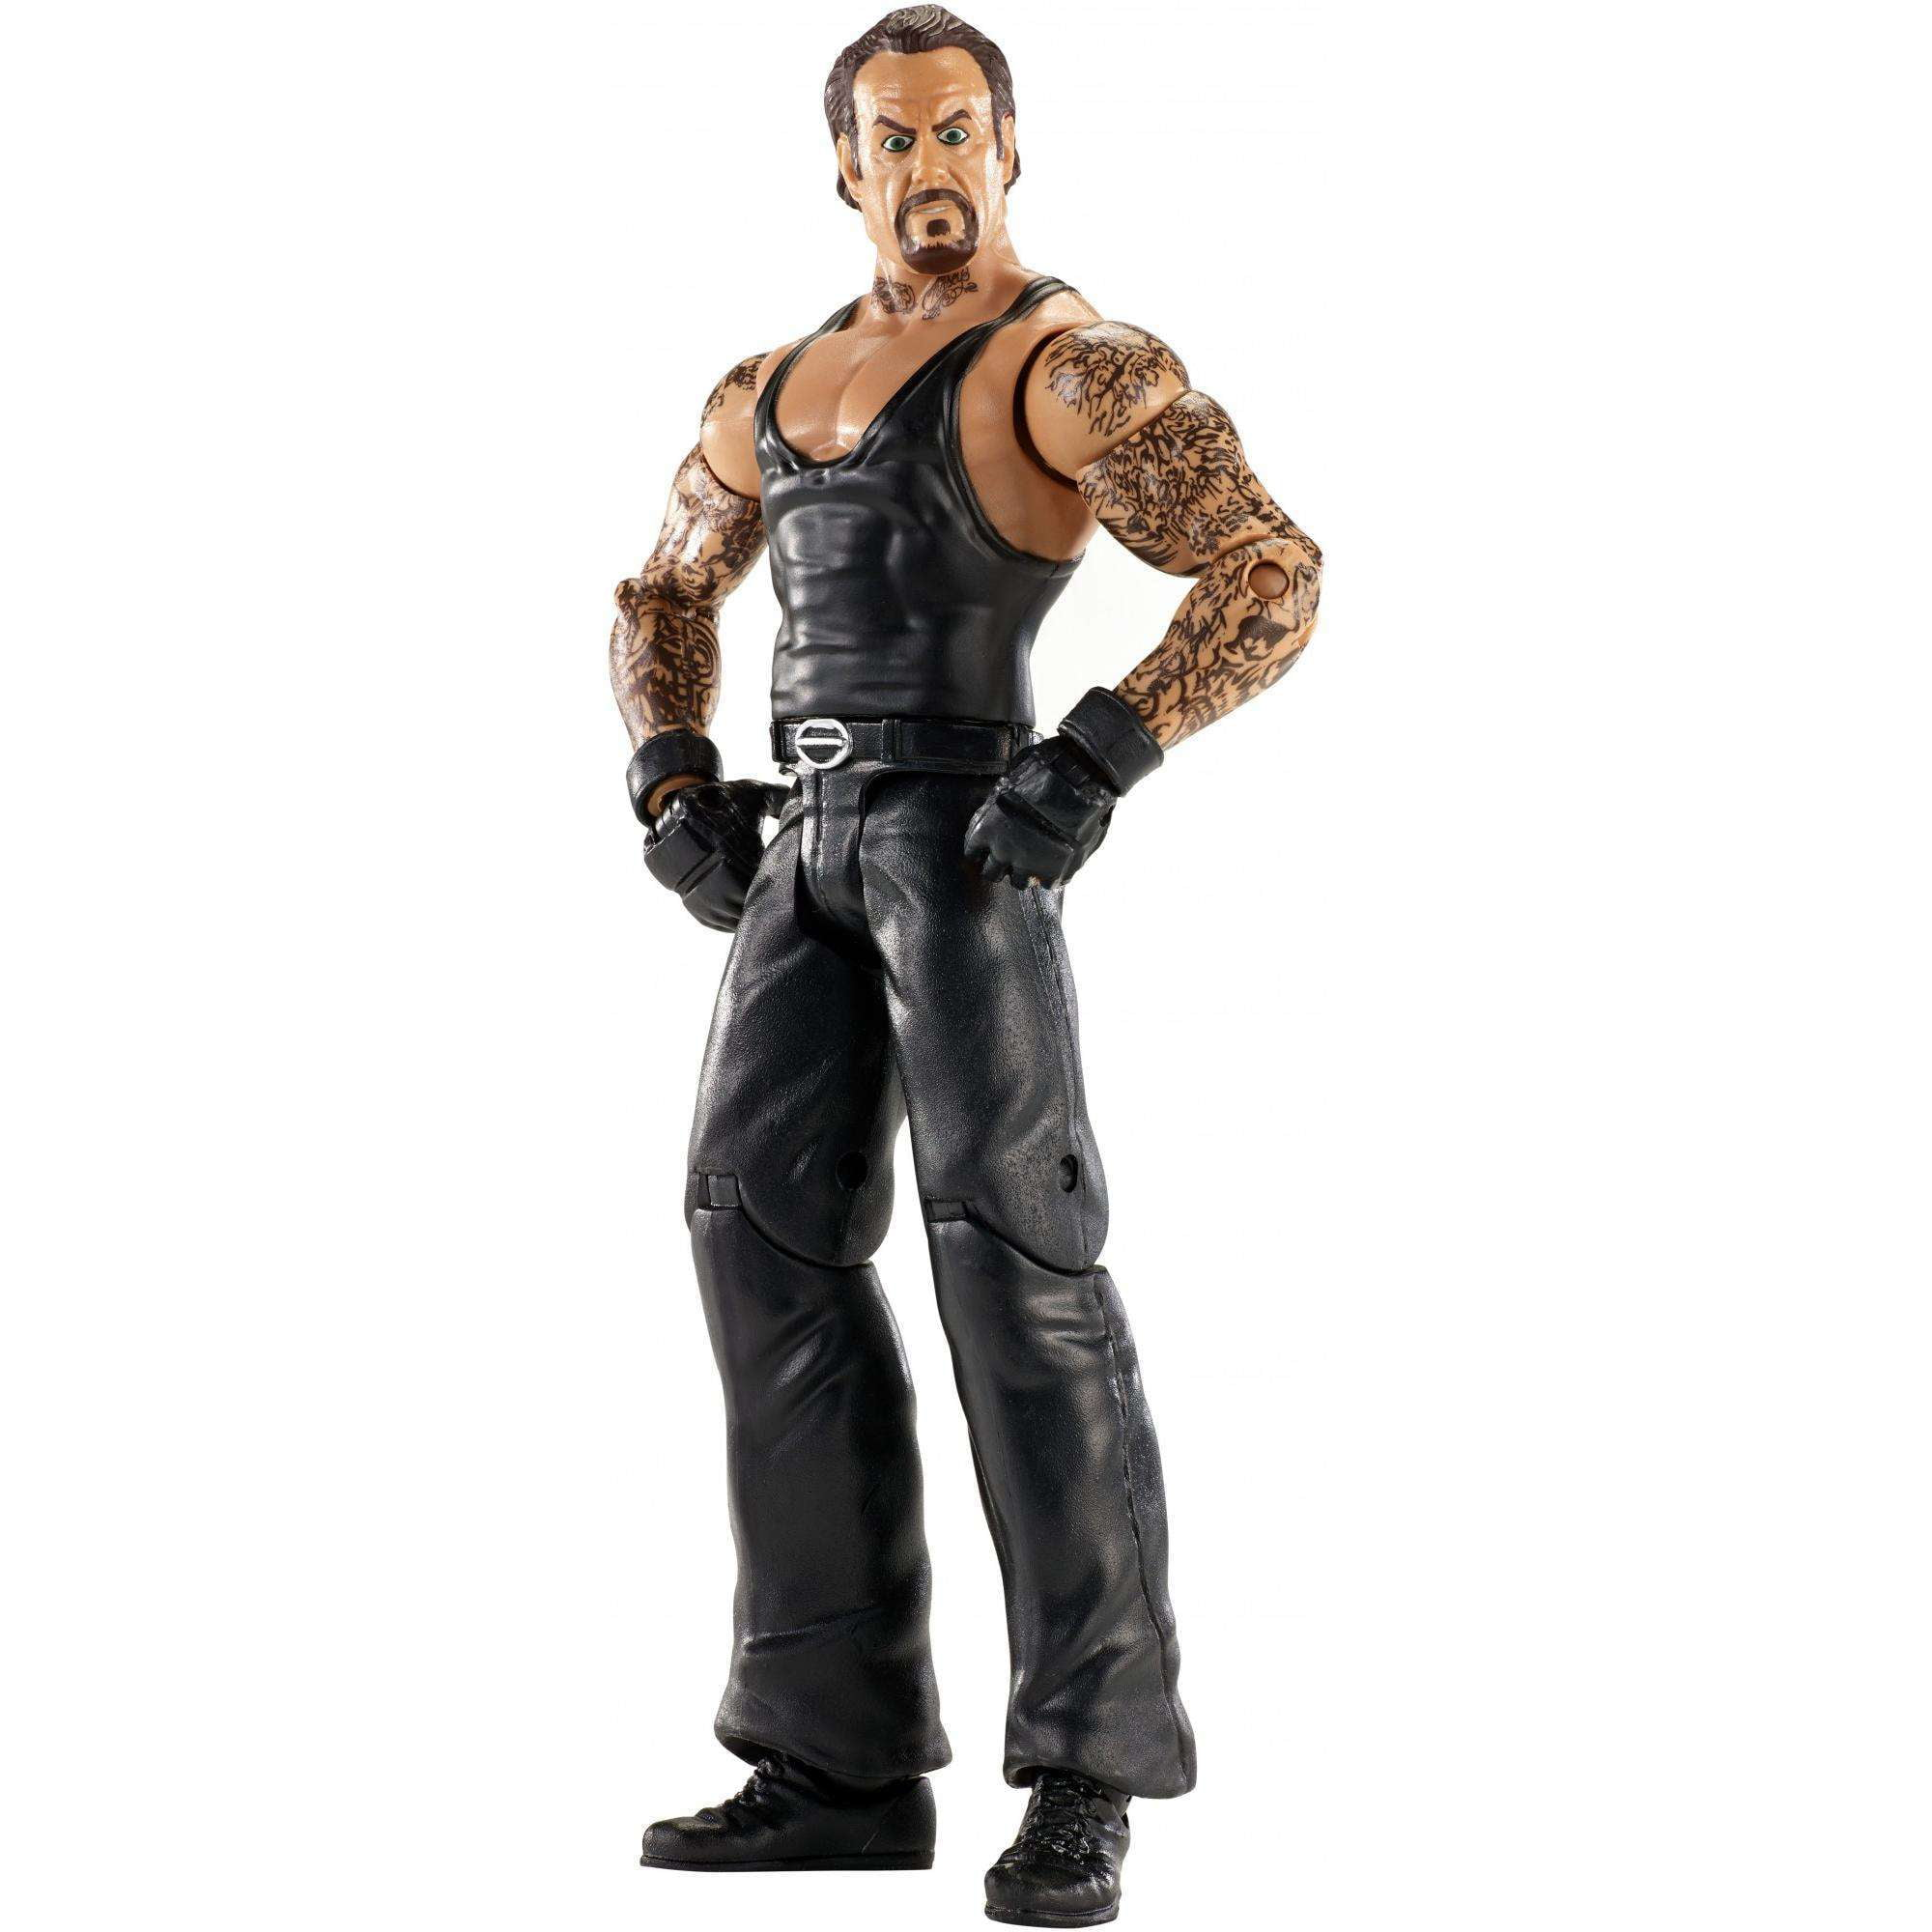 WWE Undertaker Figure by Mattel